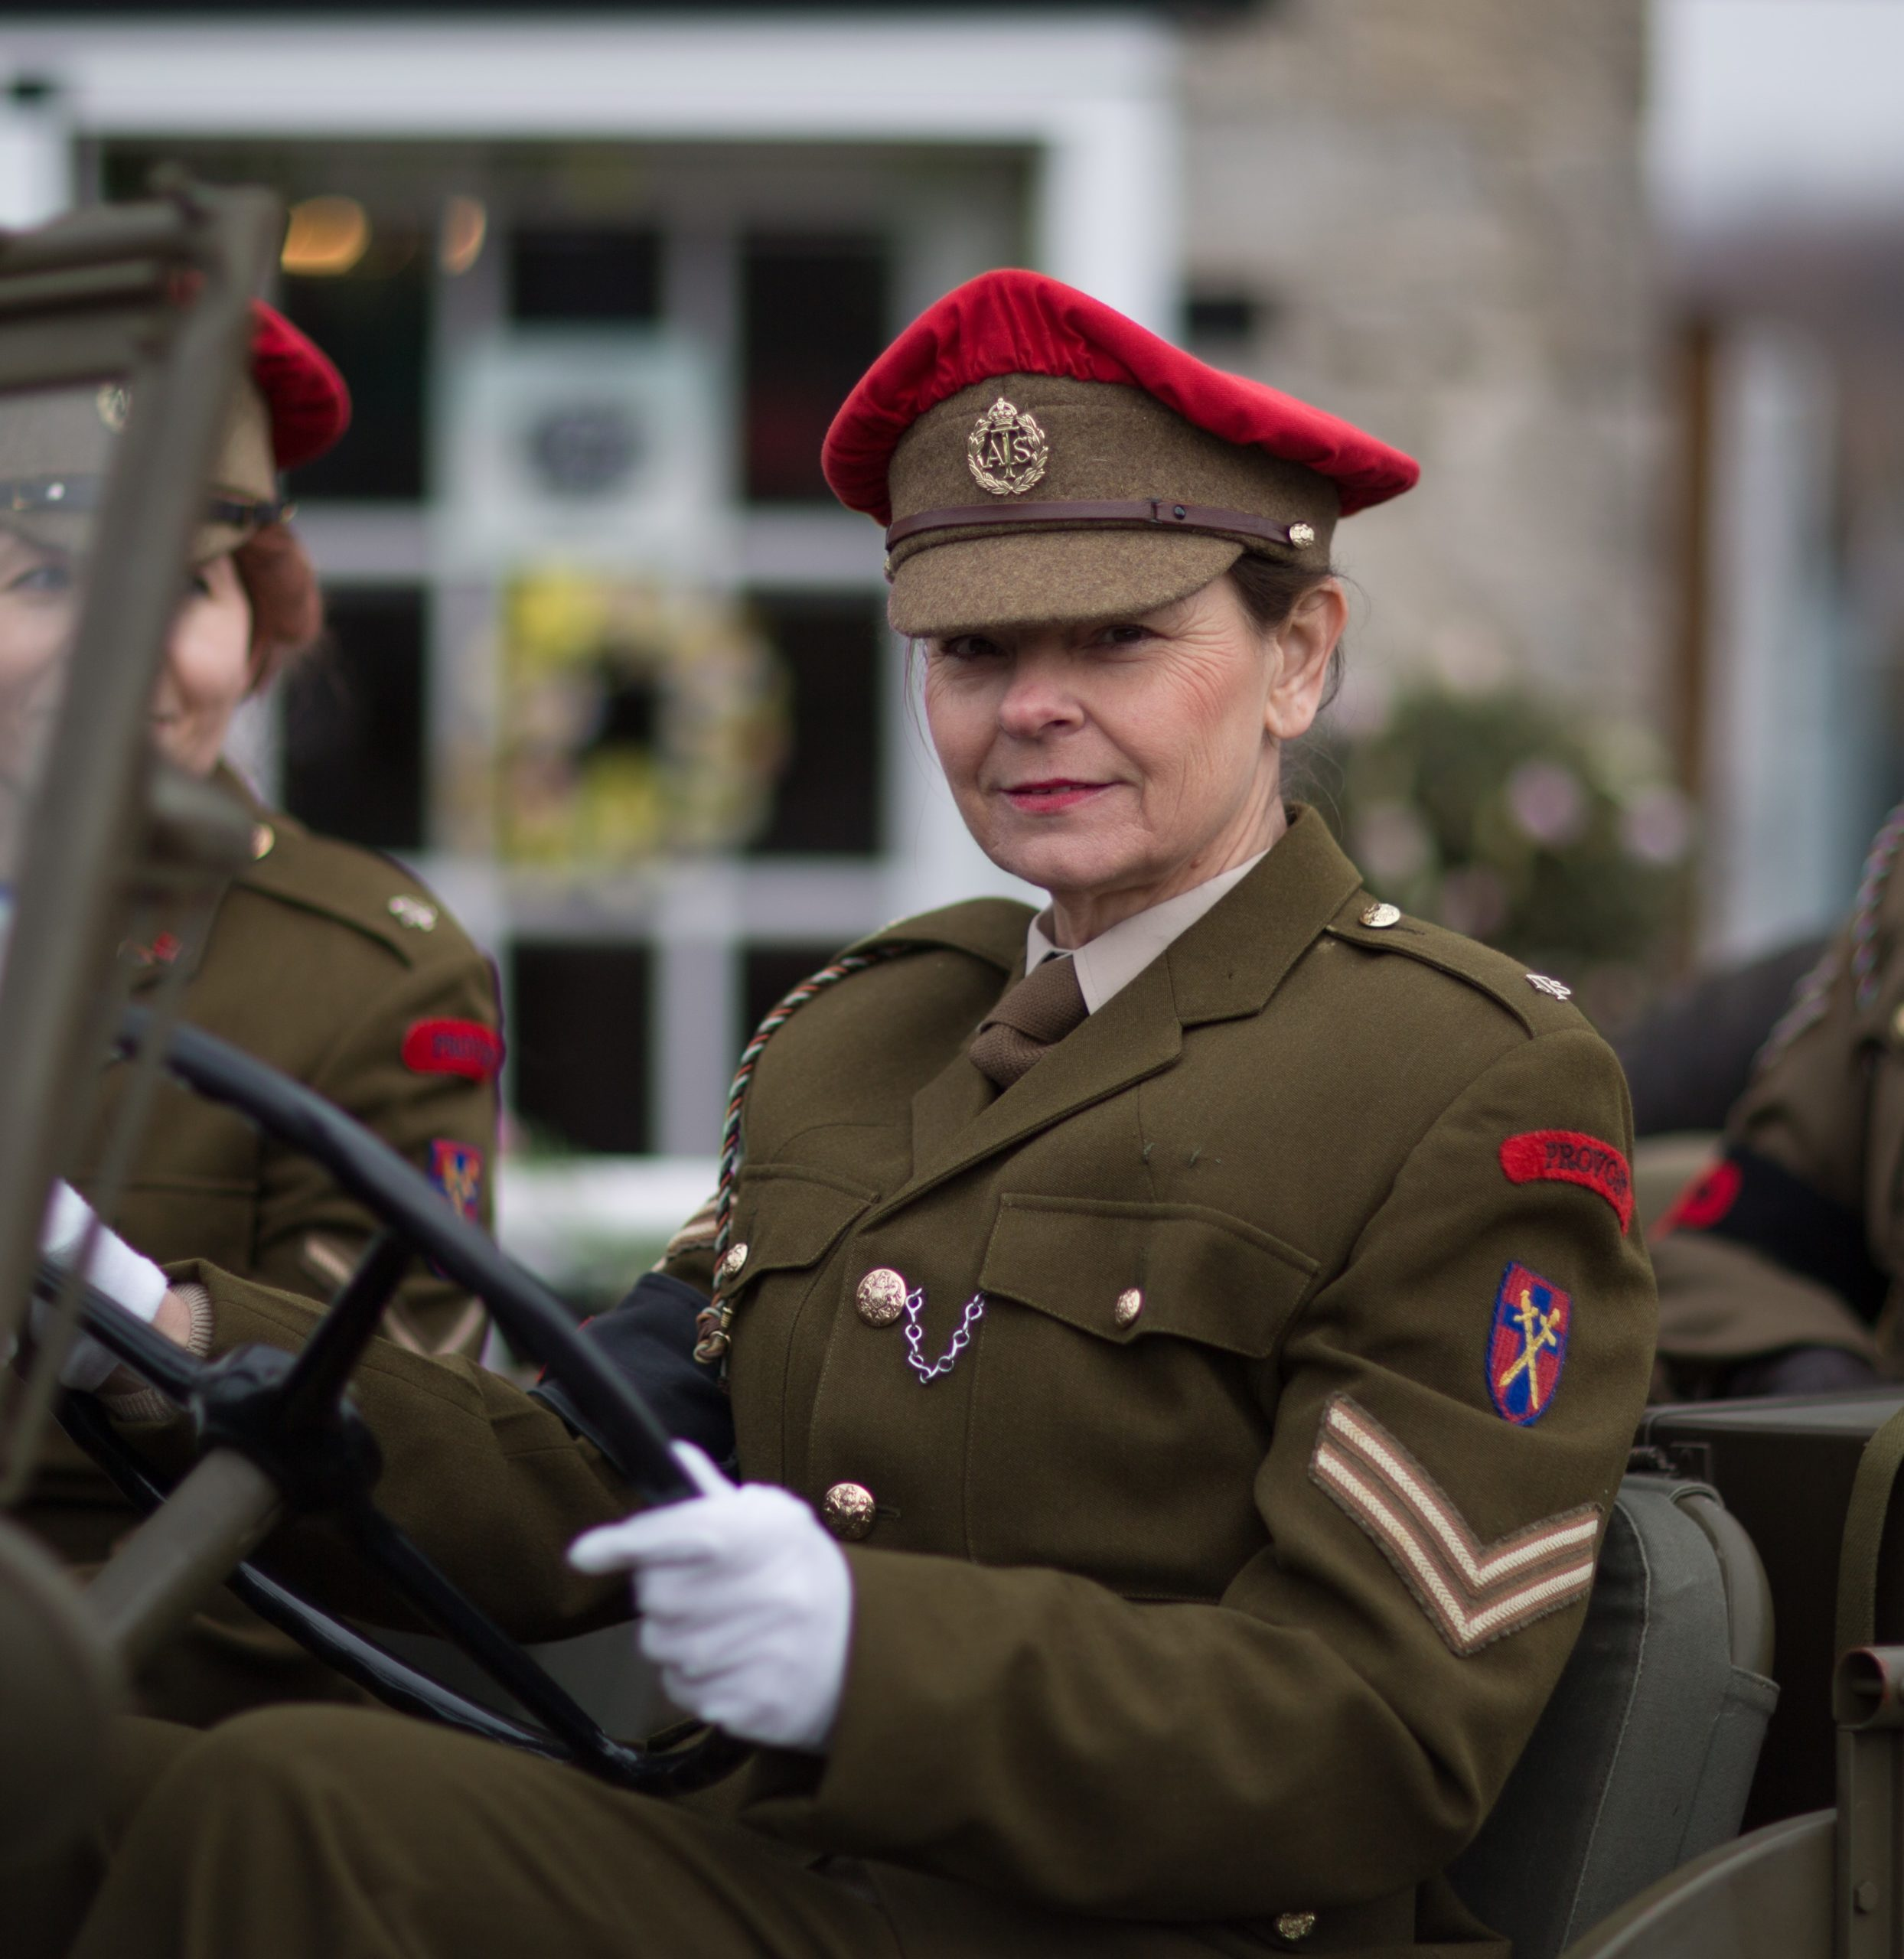 Womens wartime roles included Auxiliary Territorial Service here shown in the portrayal of a Military Policewoman.